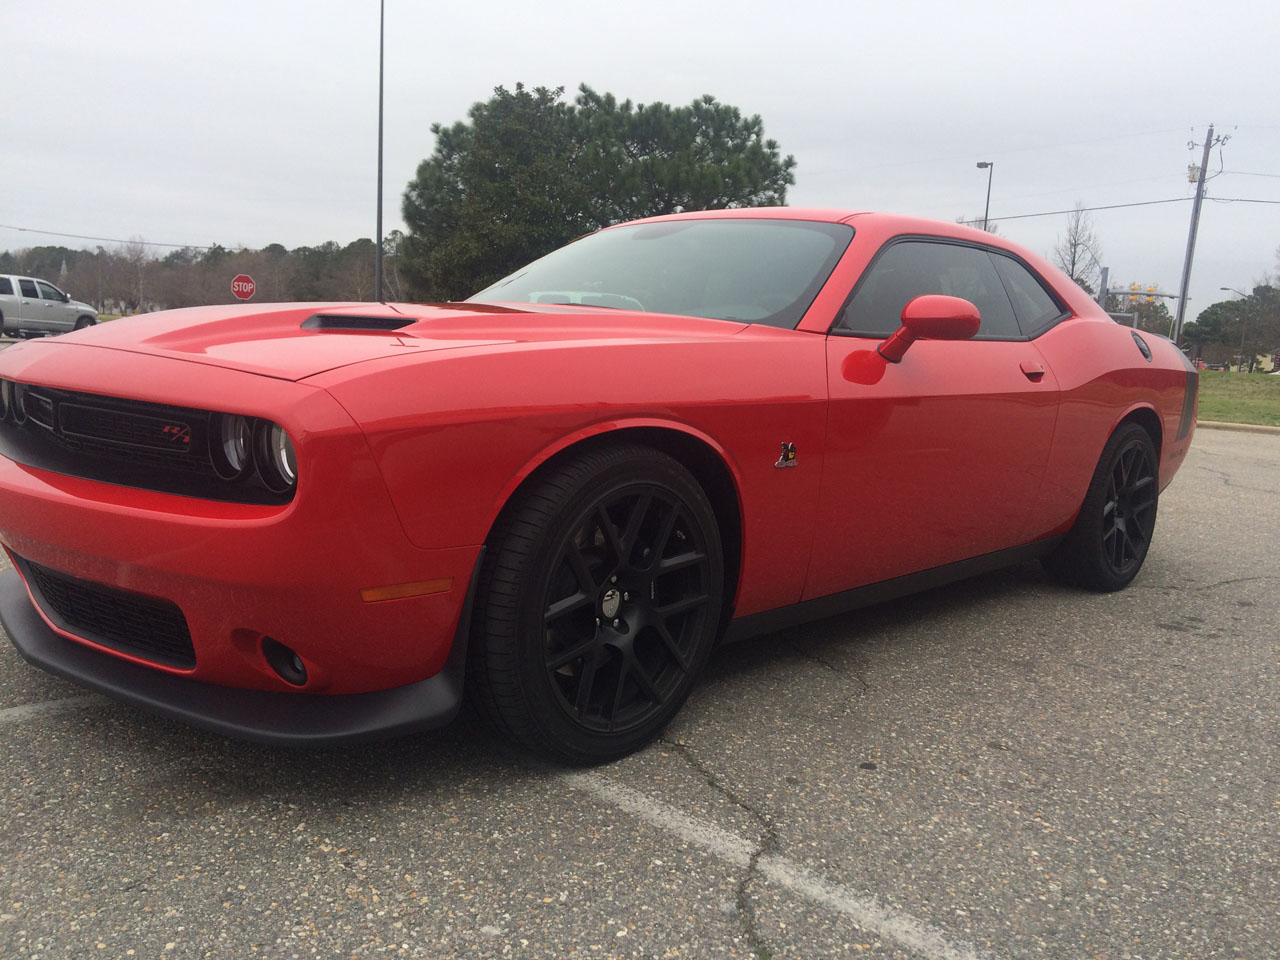 2015 Dodge Challenger R/T SCATPACK 1/4 mile Drag Racing trap speed 0